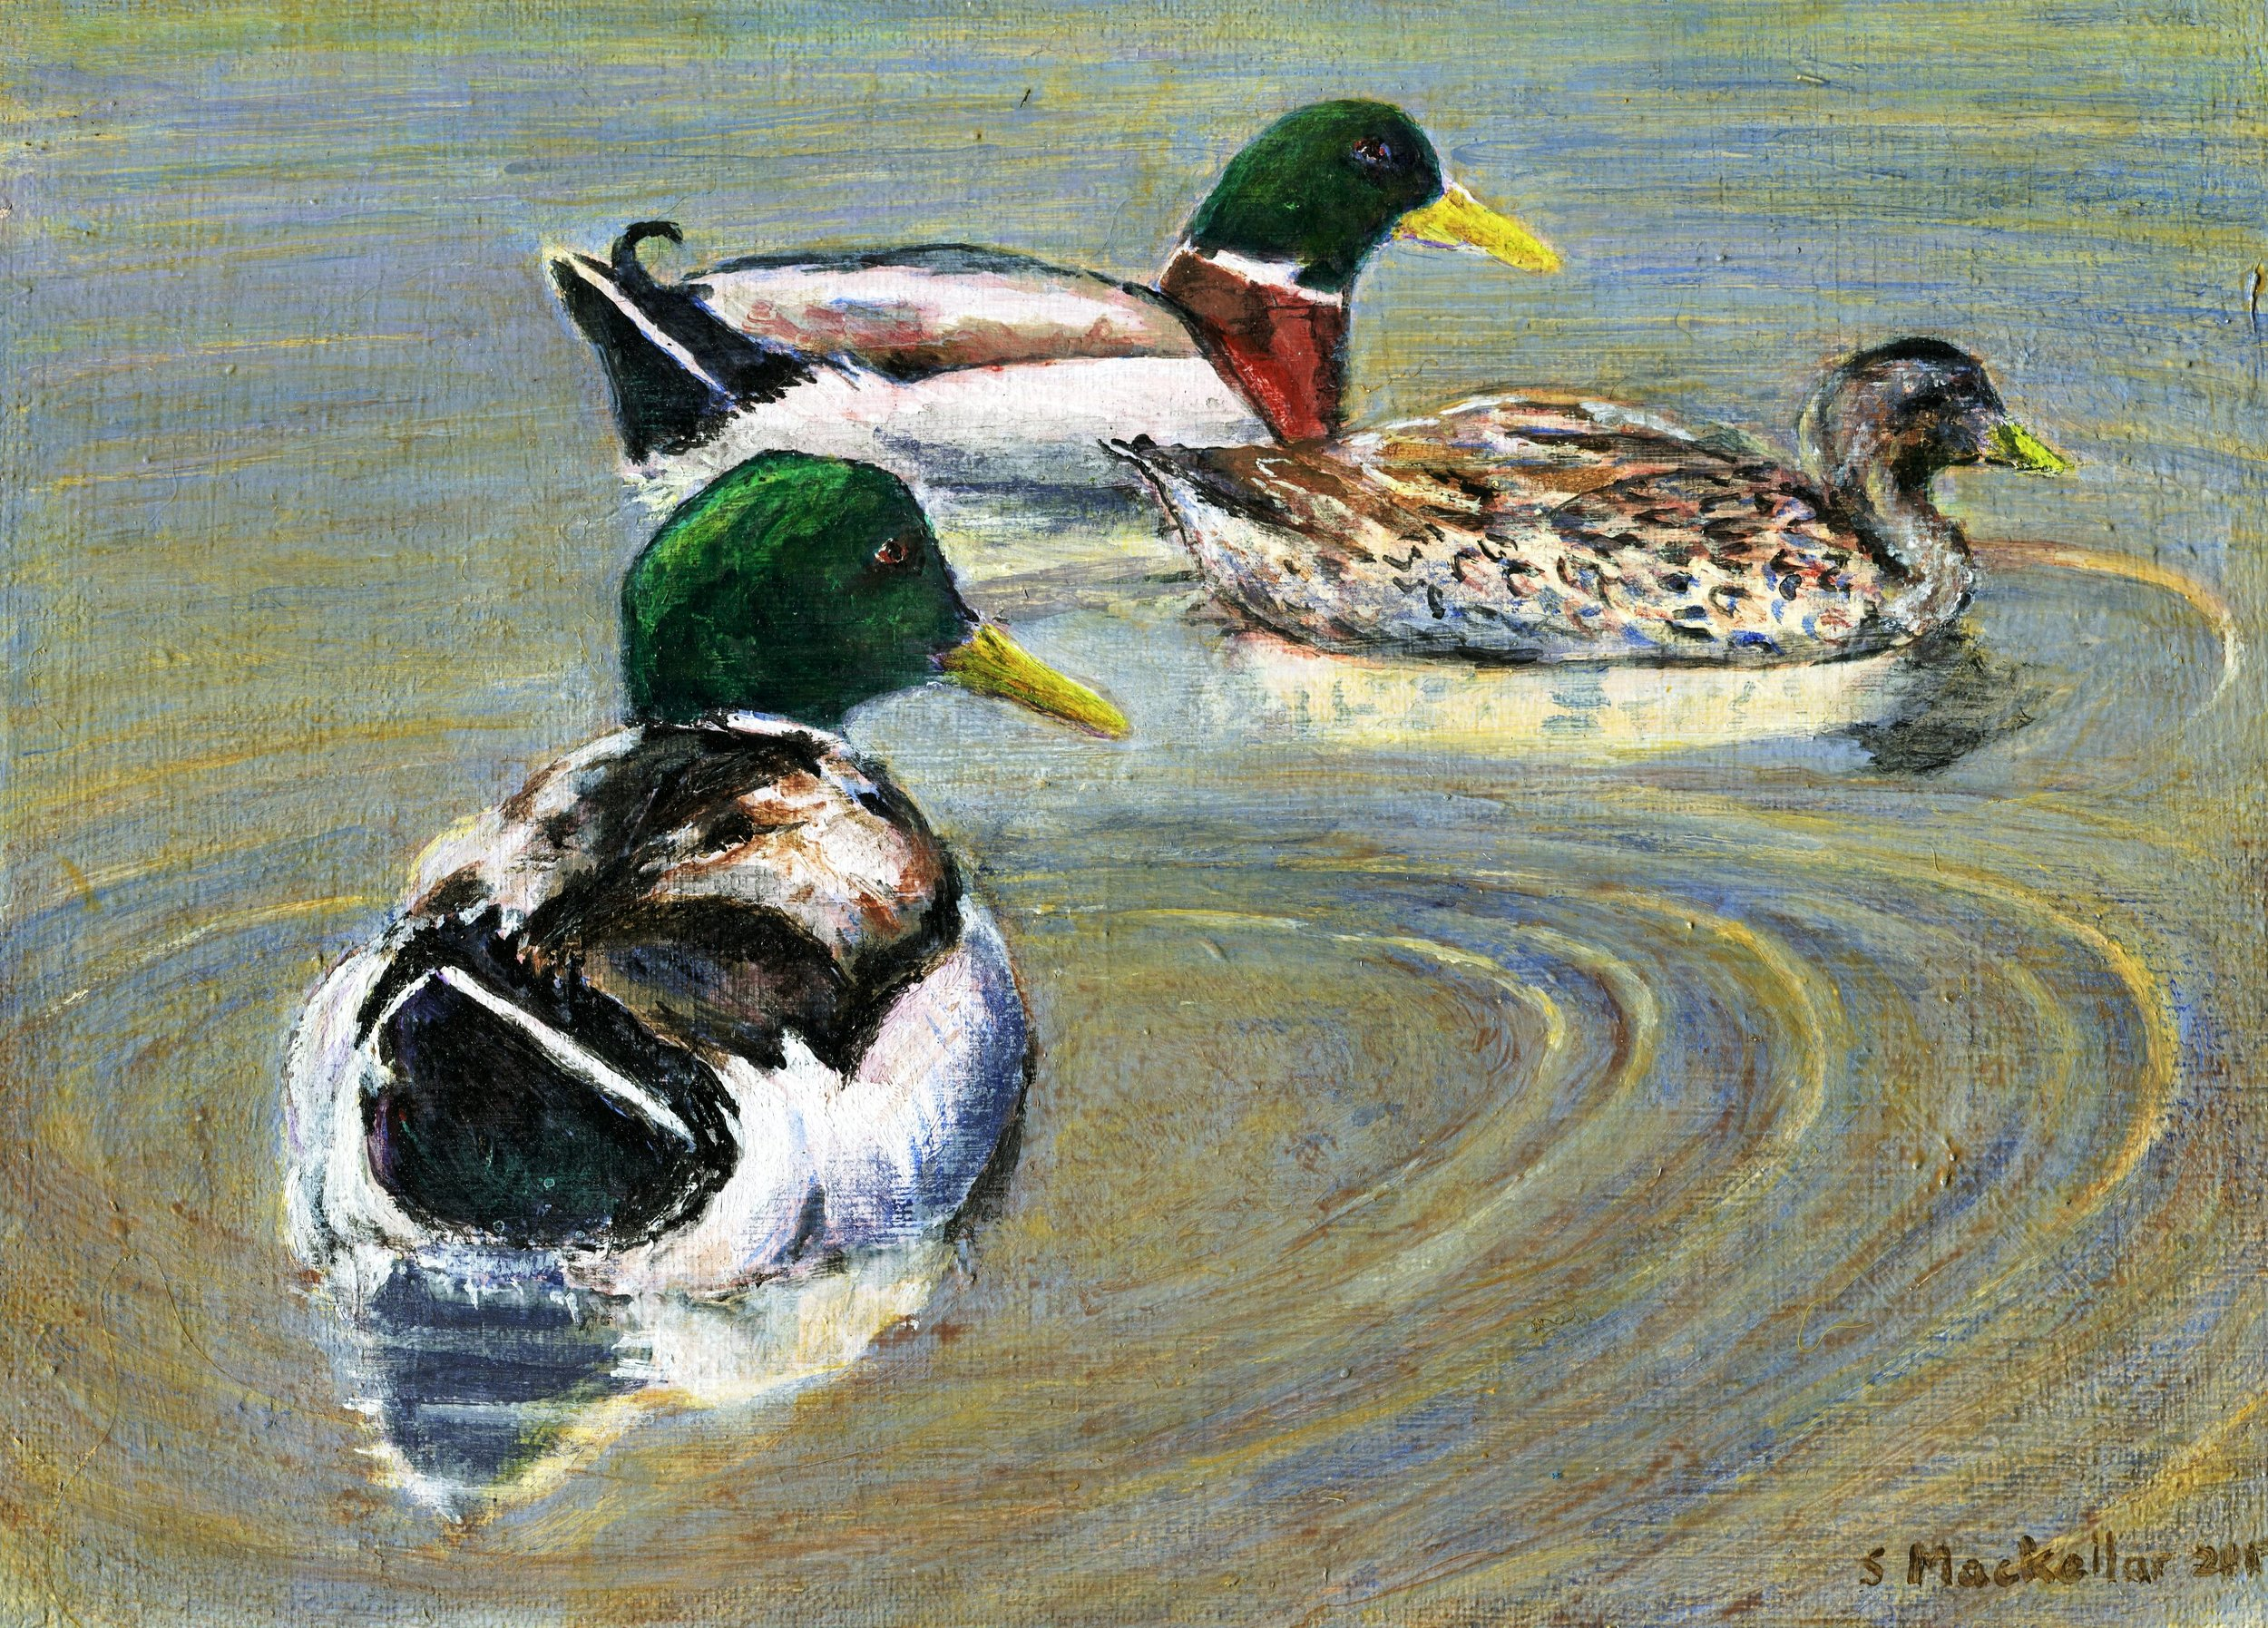 65B SHIRLEY MACKELLAR, LIKE A DUCK TO WATER, ACRYLIC ON CANVAS BOARD